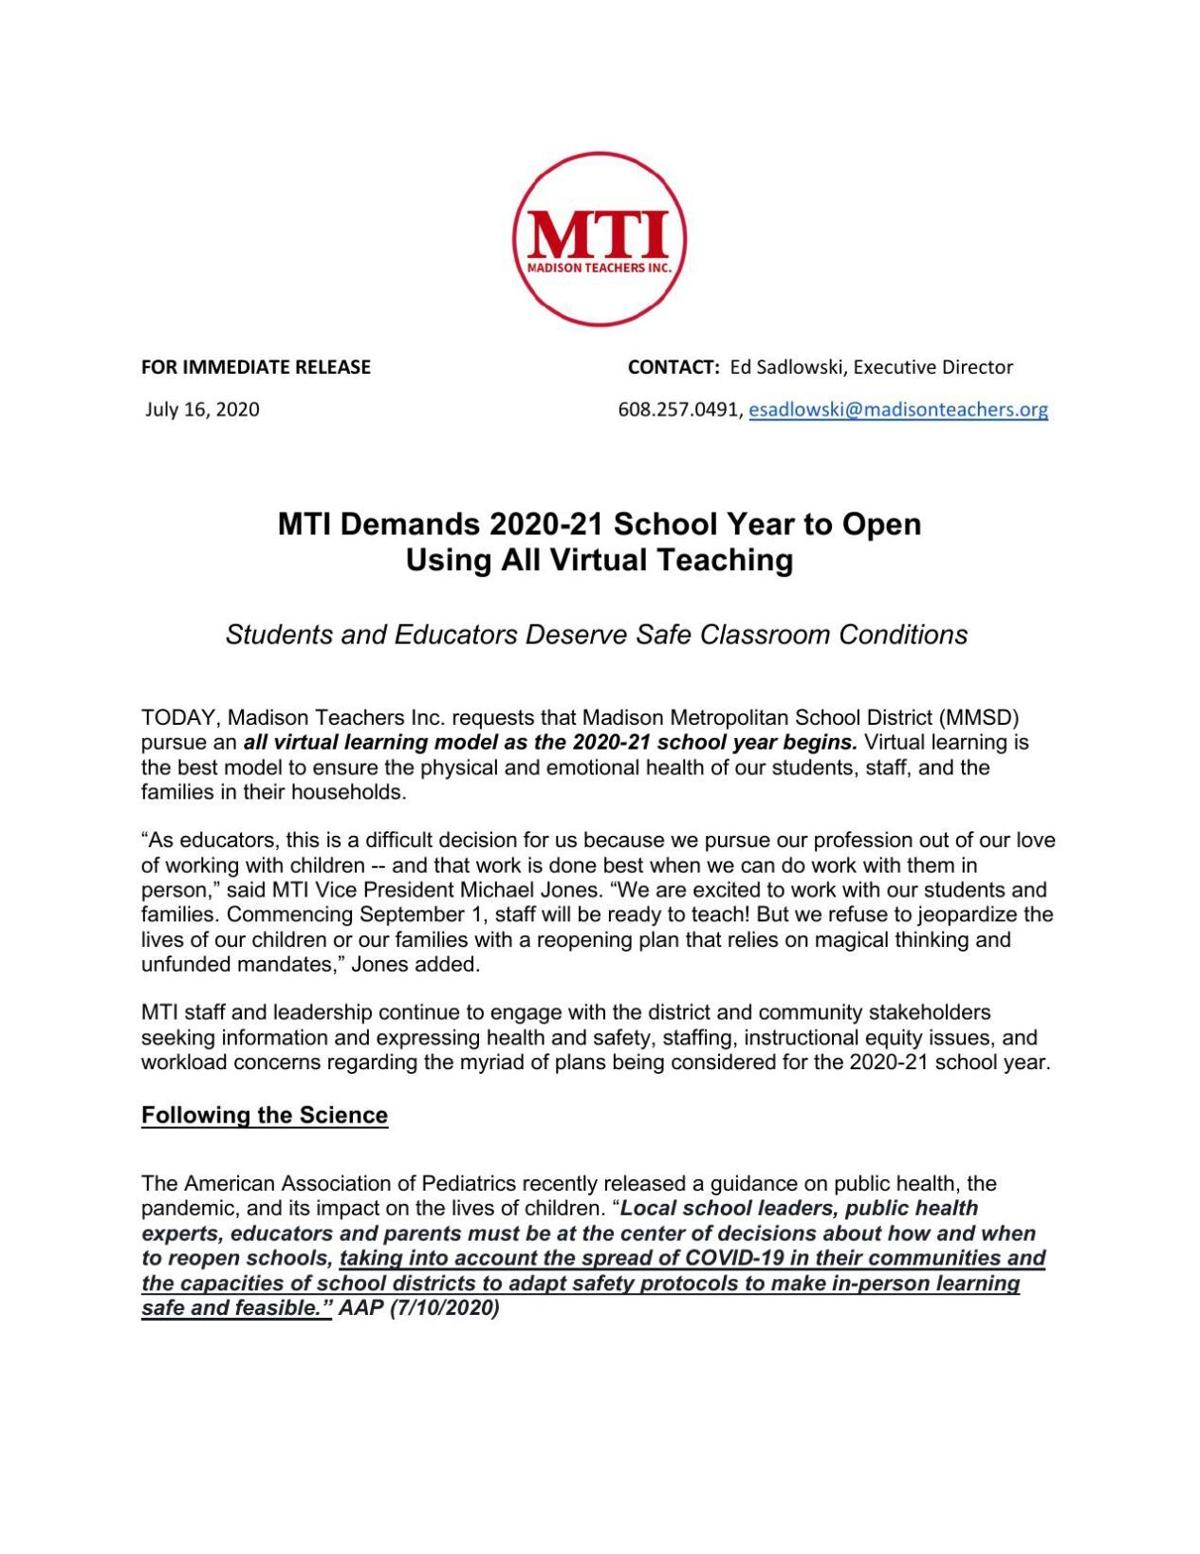 MTI statement